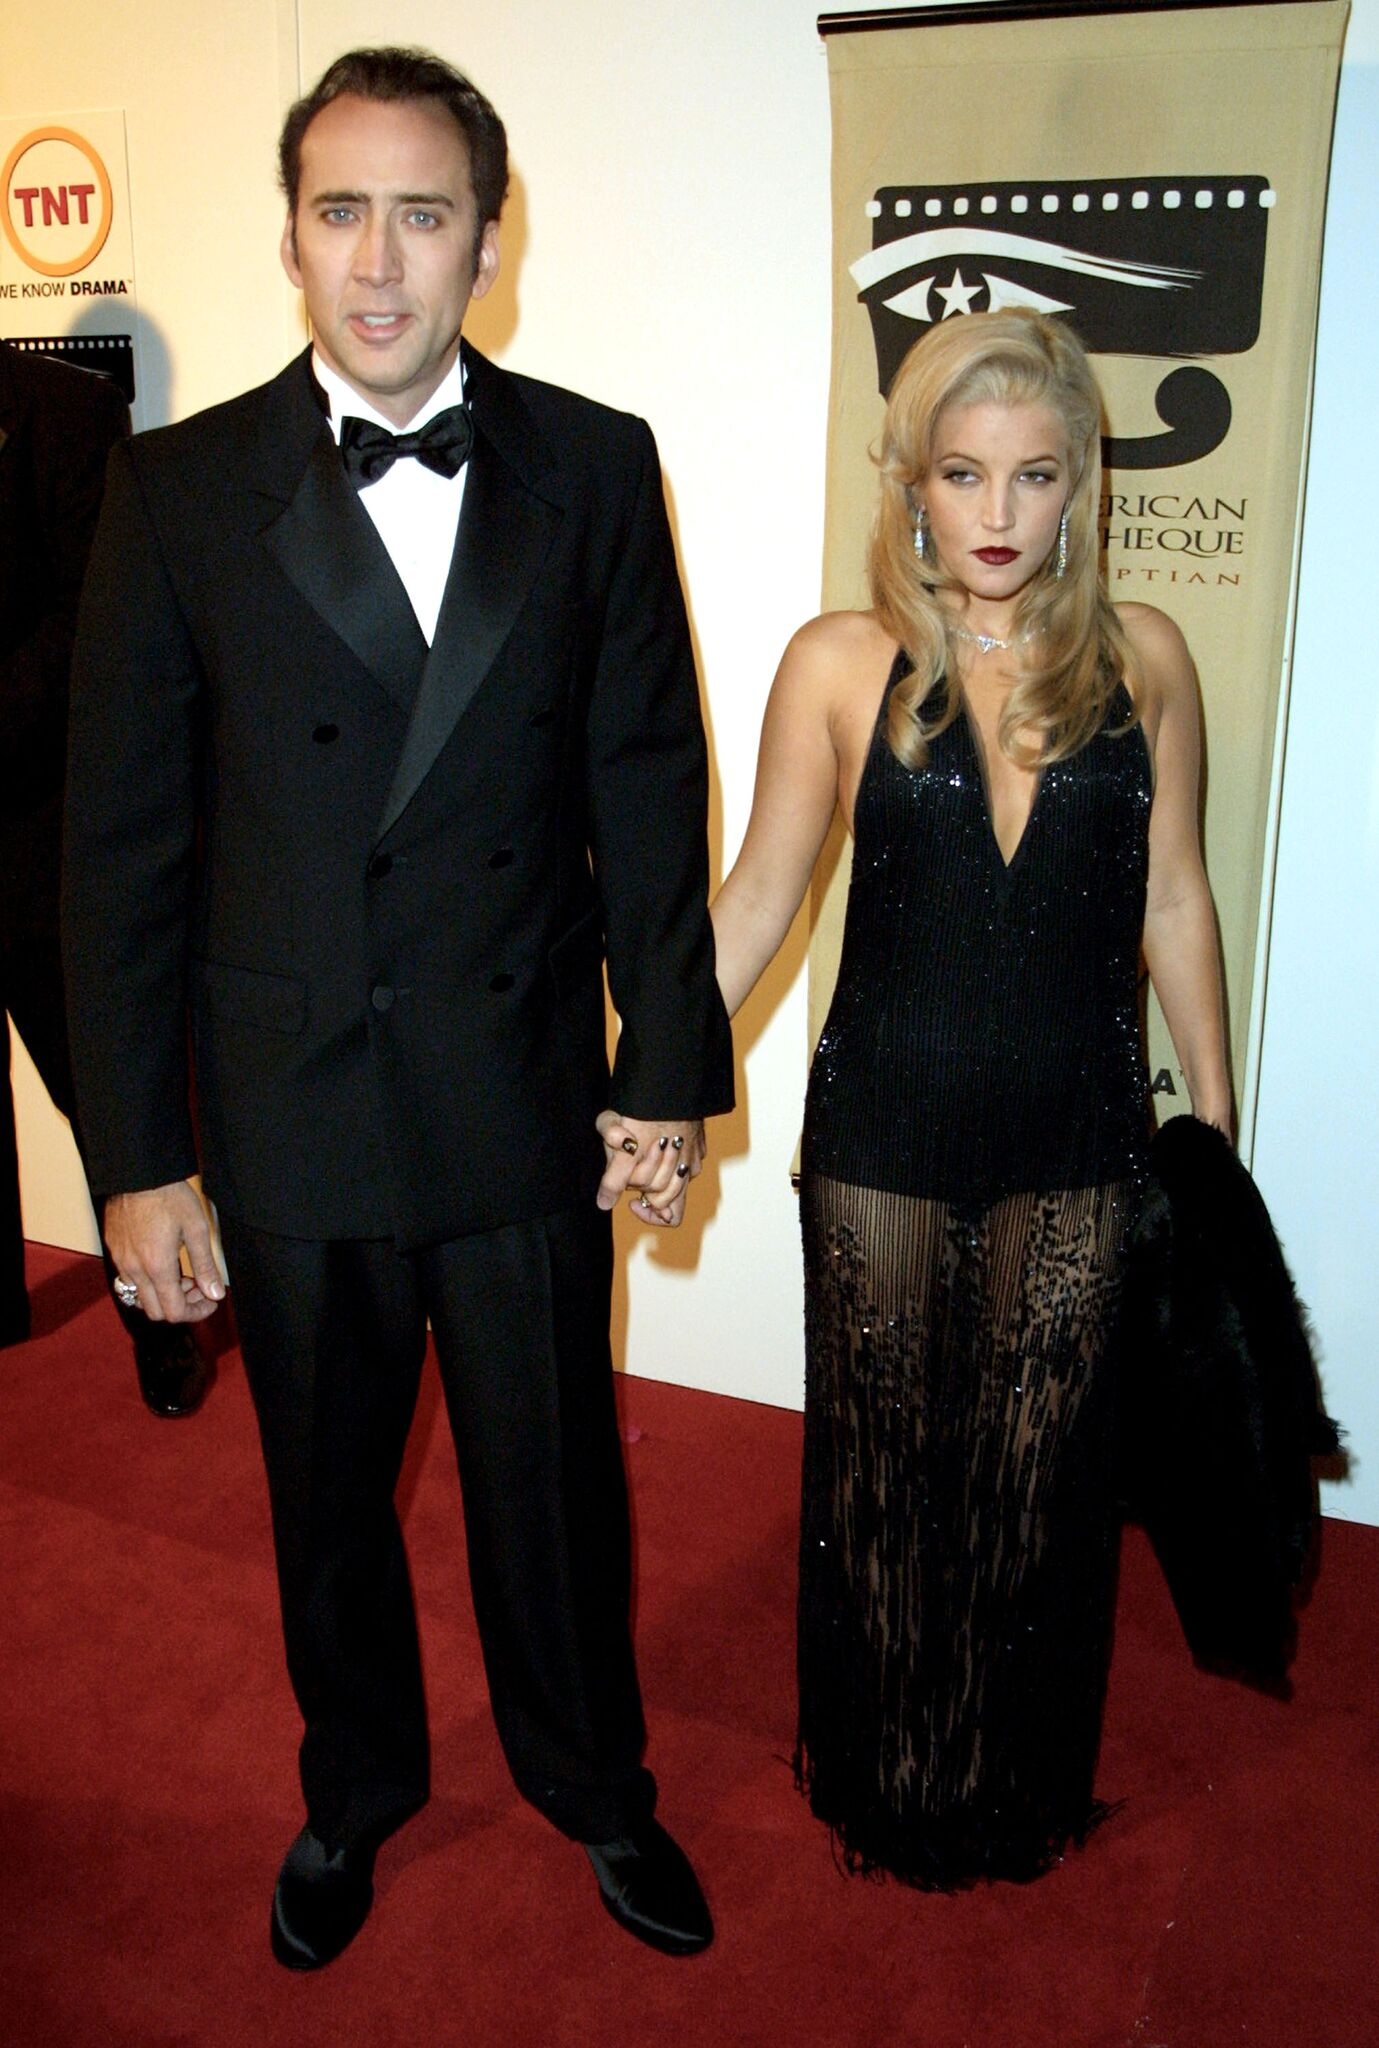 Nicolas Cage and Lisa Marie Presley arrive at the 16th Annual American Cinematheque Award | Getty Images